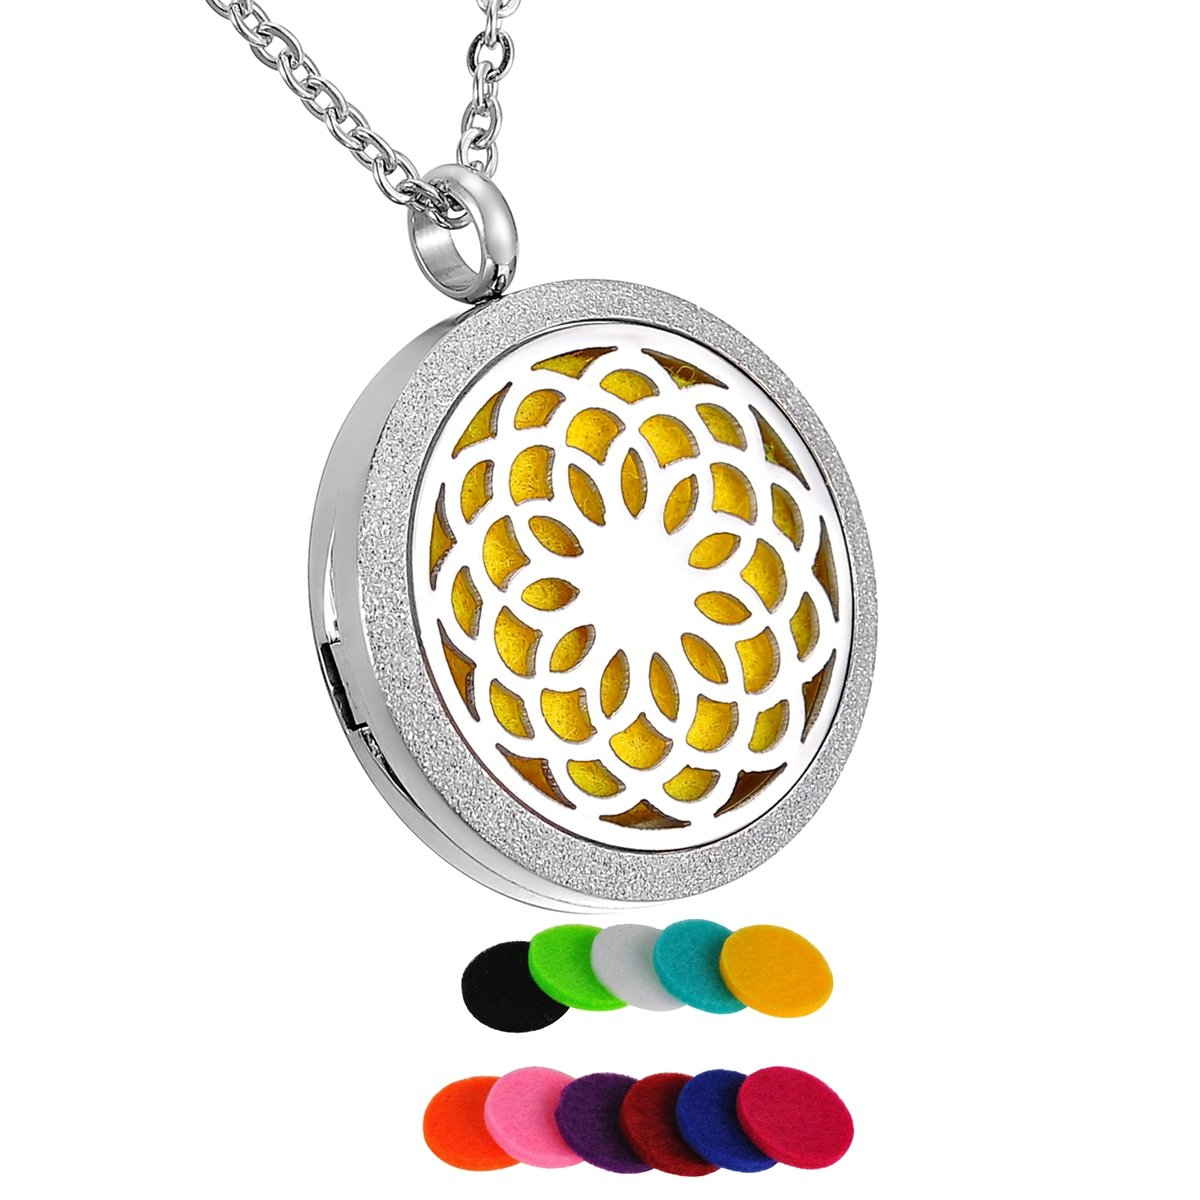 HooAMI Sunflower Aromatherapy Essential Oil Diffuser Necklace Pendant Locket Jewelry TY BETY102416